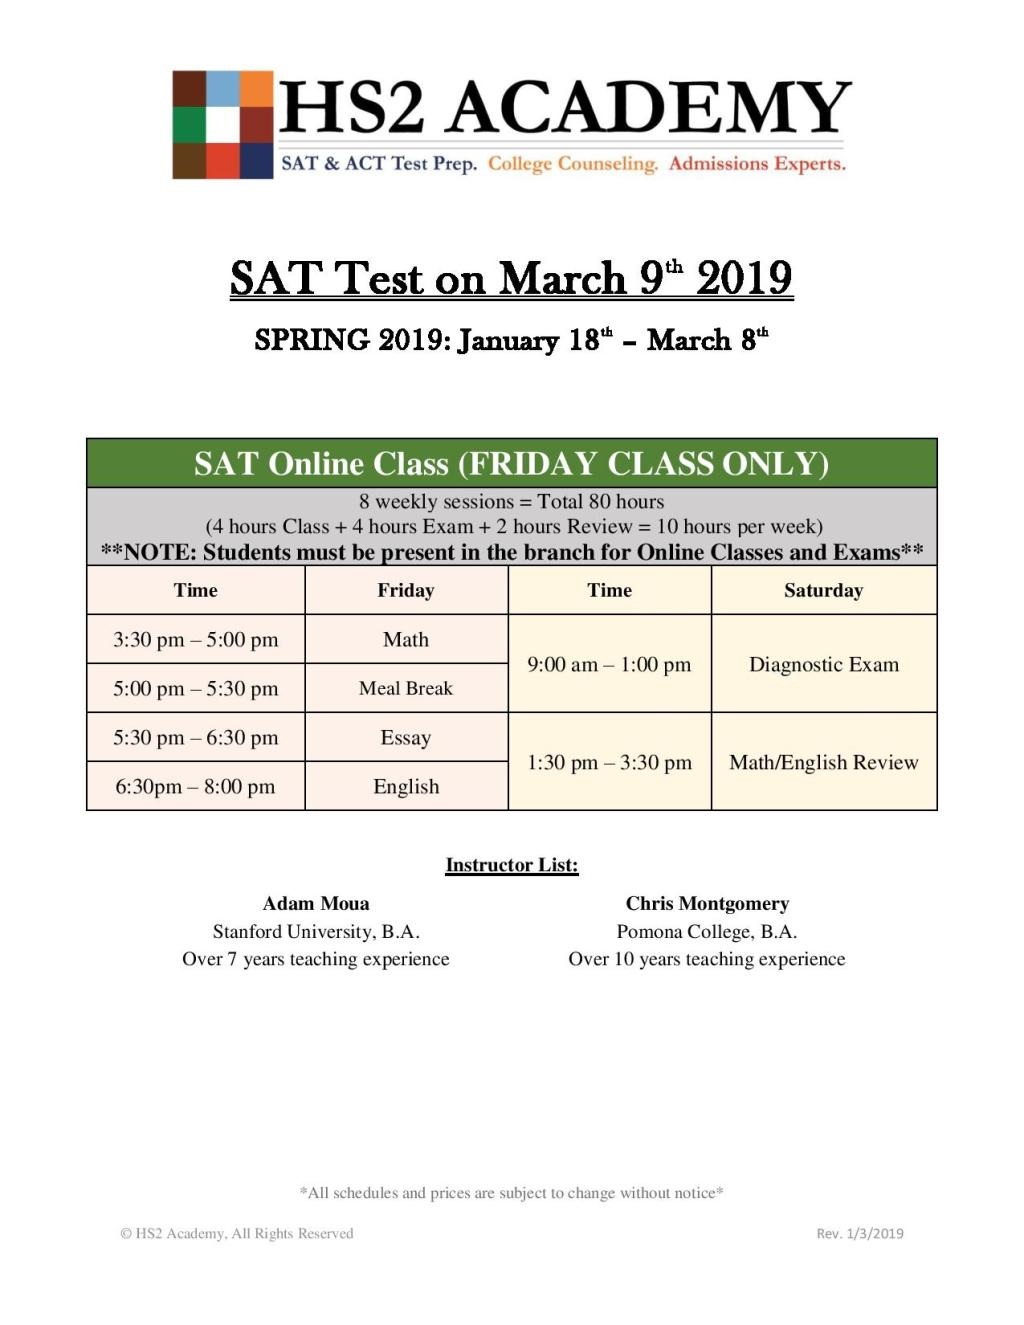 2019 spring sat online schedule (for test on march 9th)-page-001